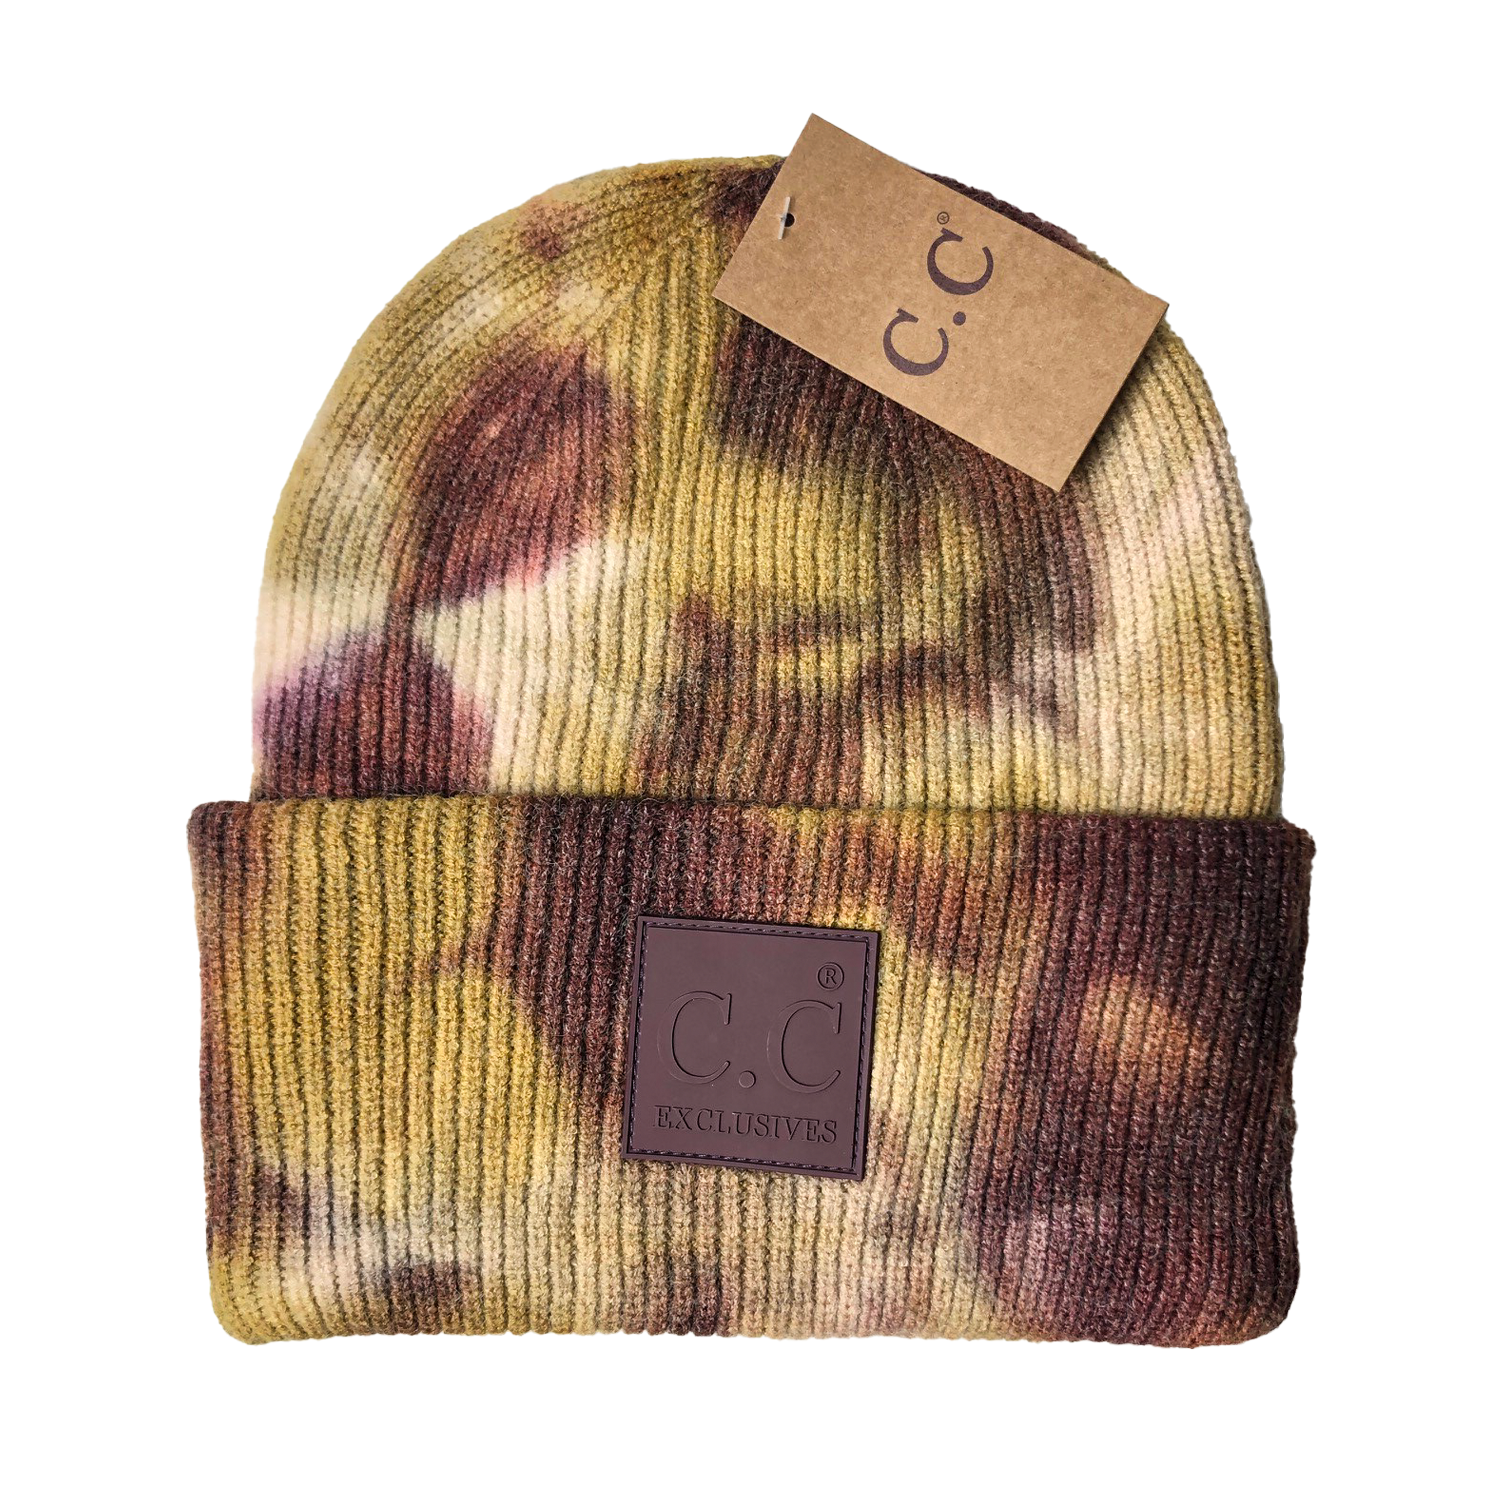 HAT-7380 Tie Dye Beanie with C.C Rubber Patch - Antique Moss/Wild Ginger